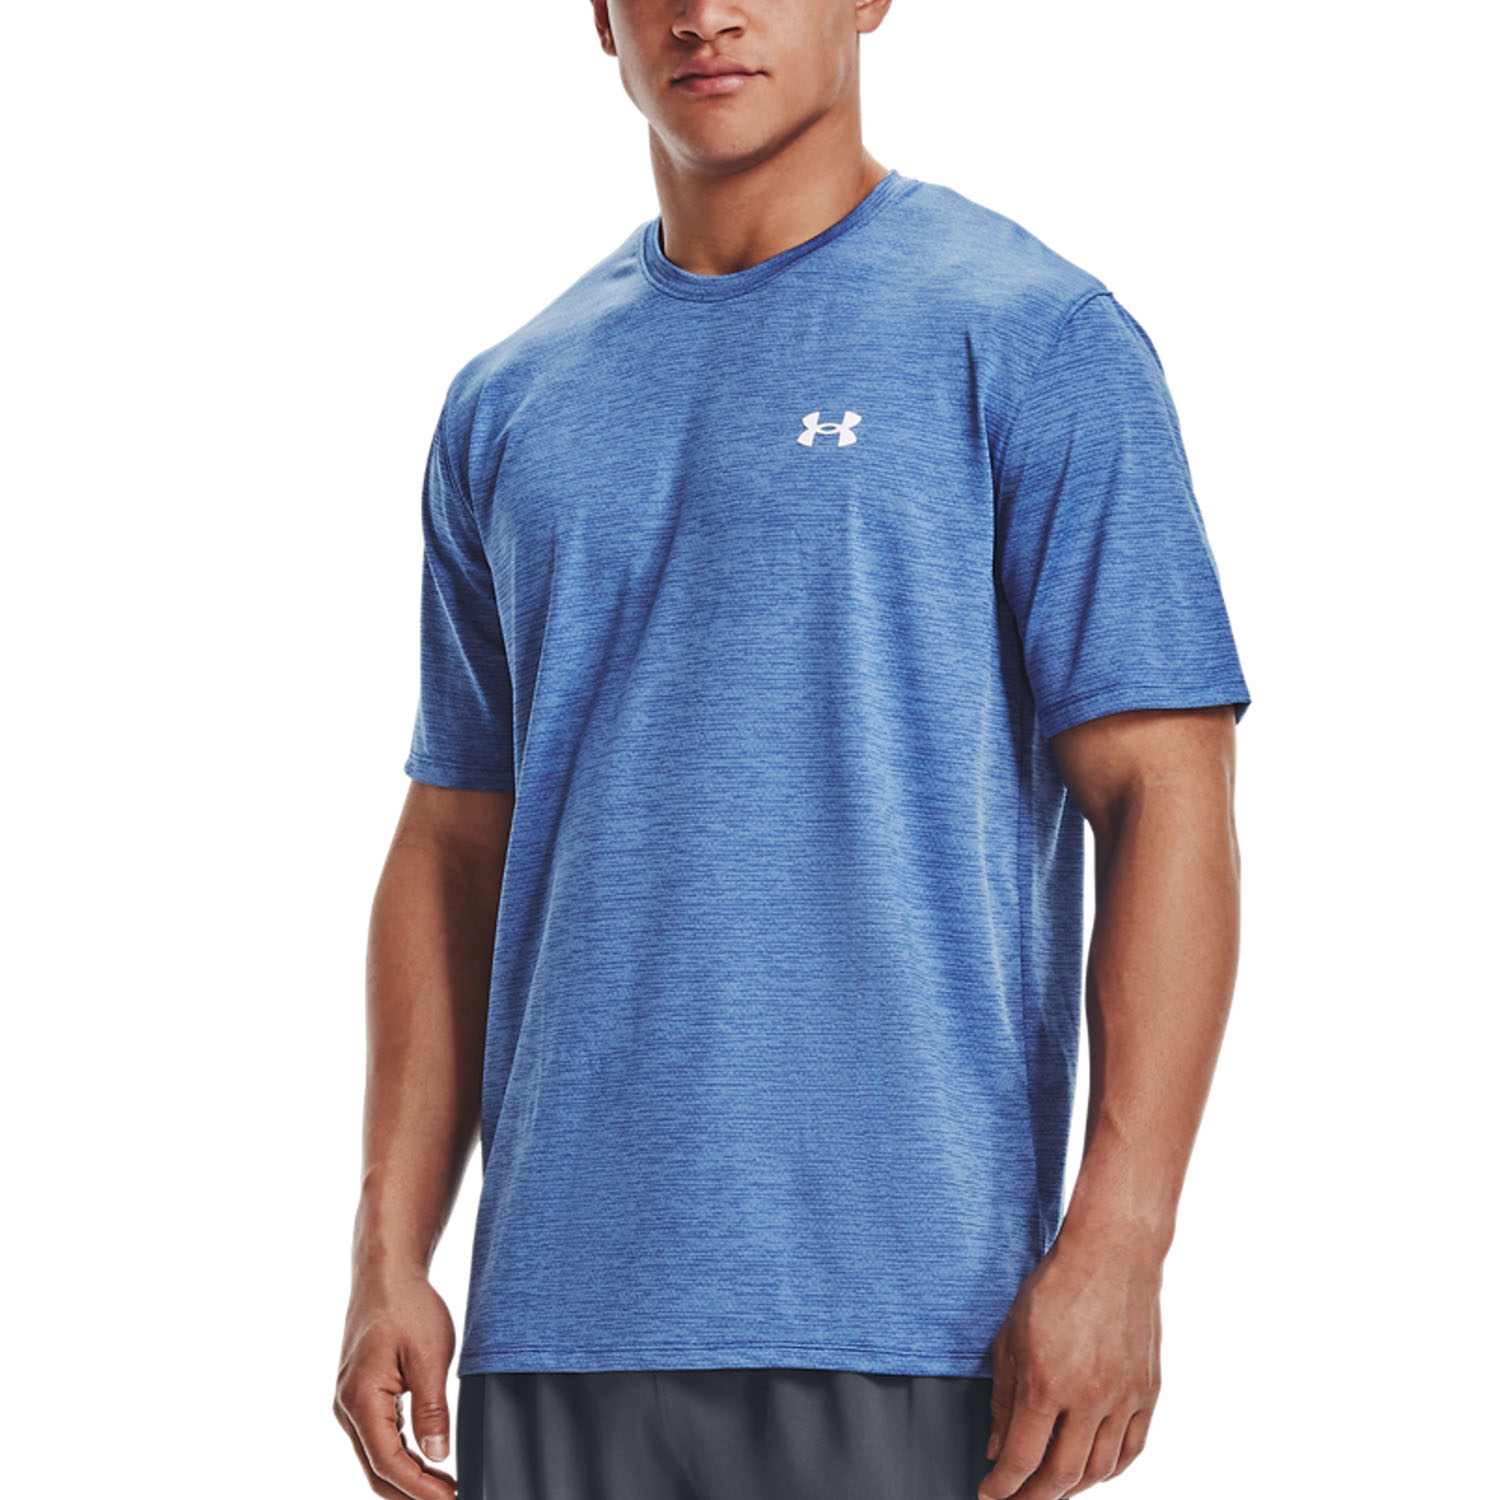 Under Armour Training Vent 2.0 T-Shirt - River/White